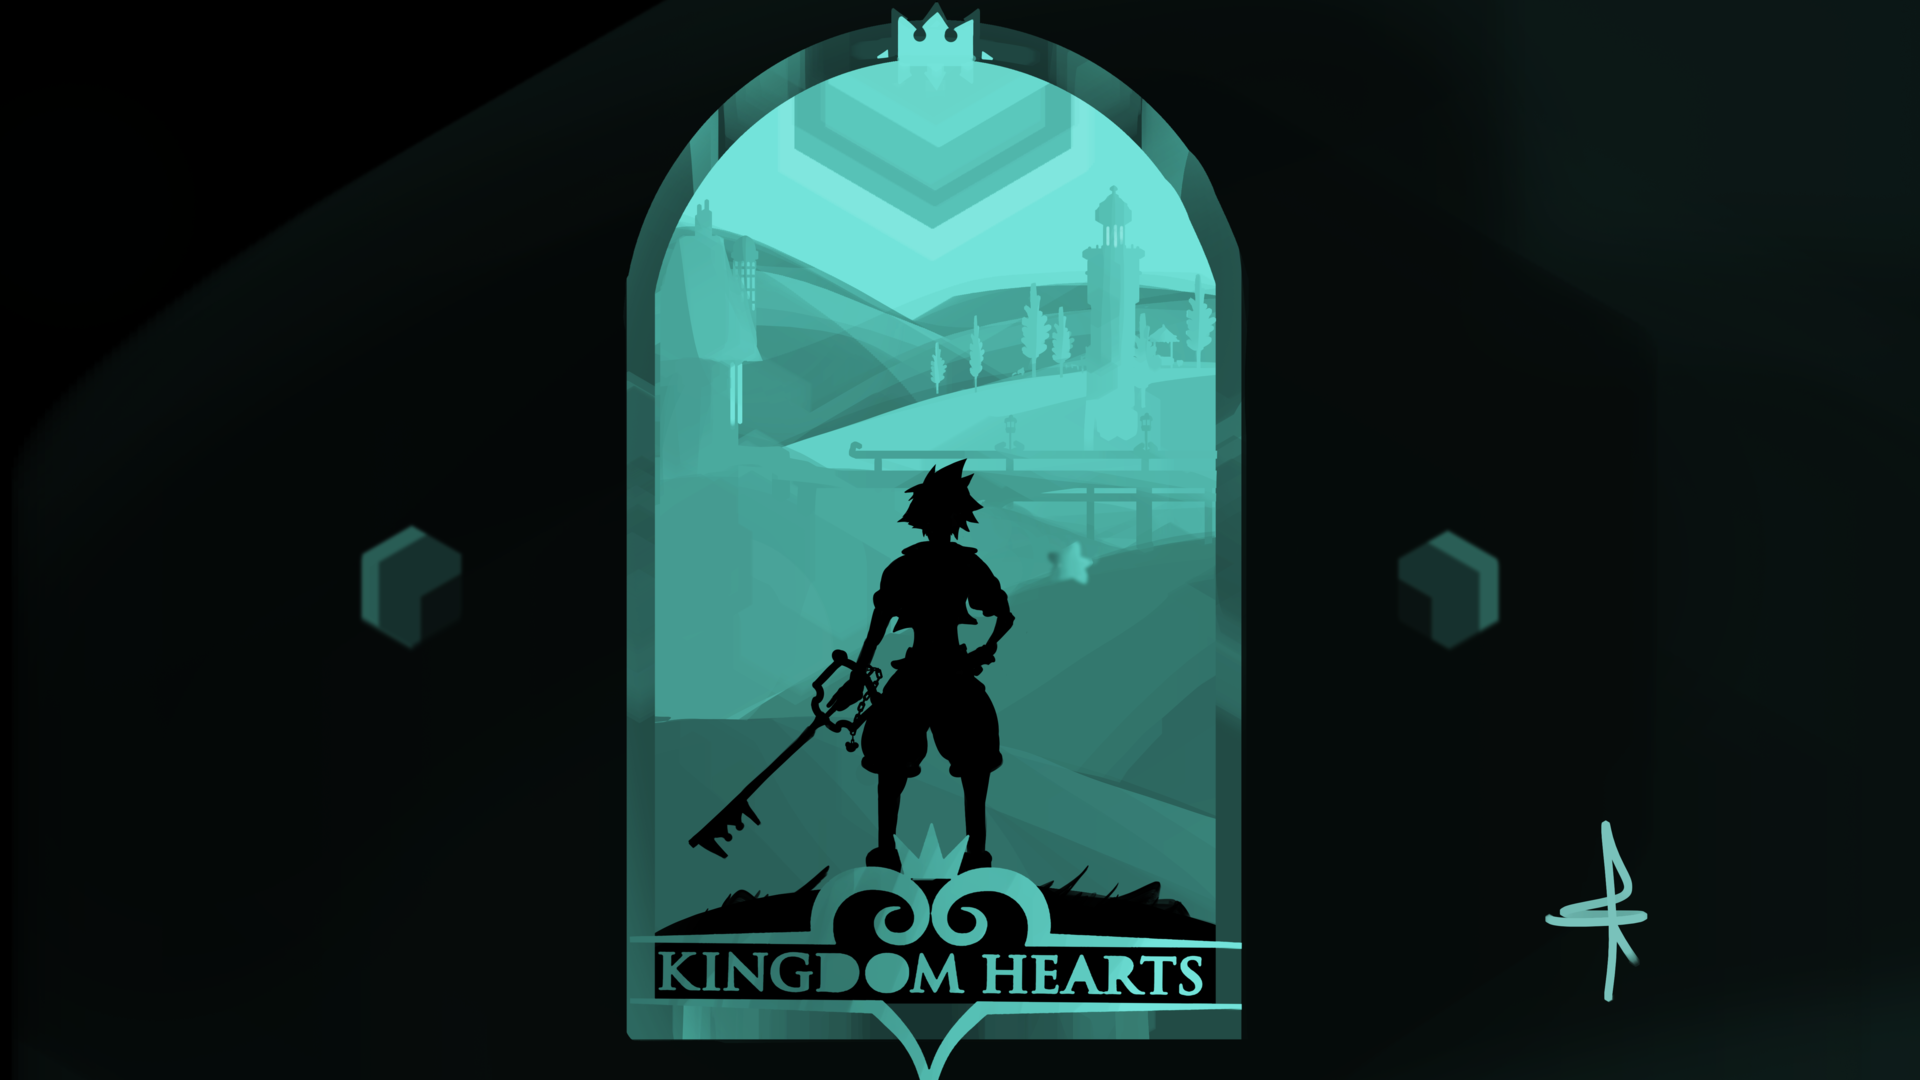 Kingdom hearts par Omaï